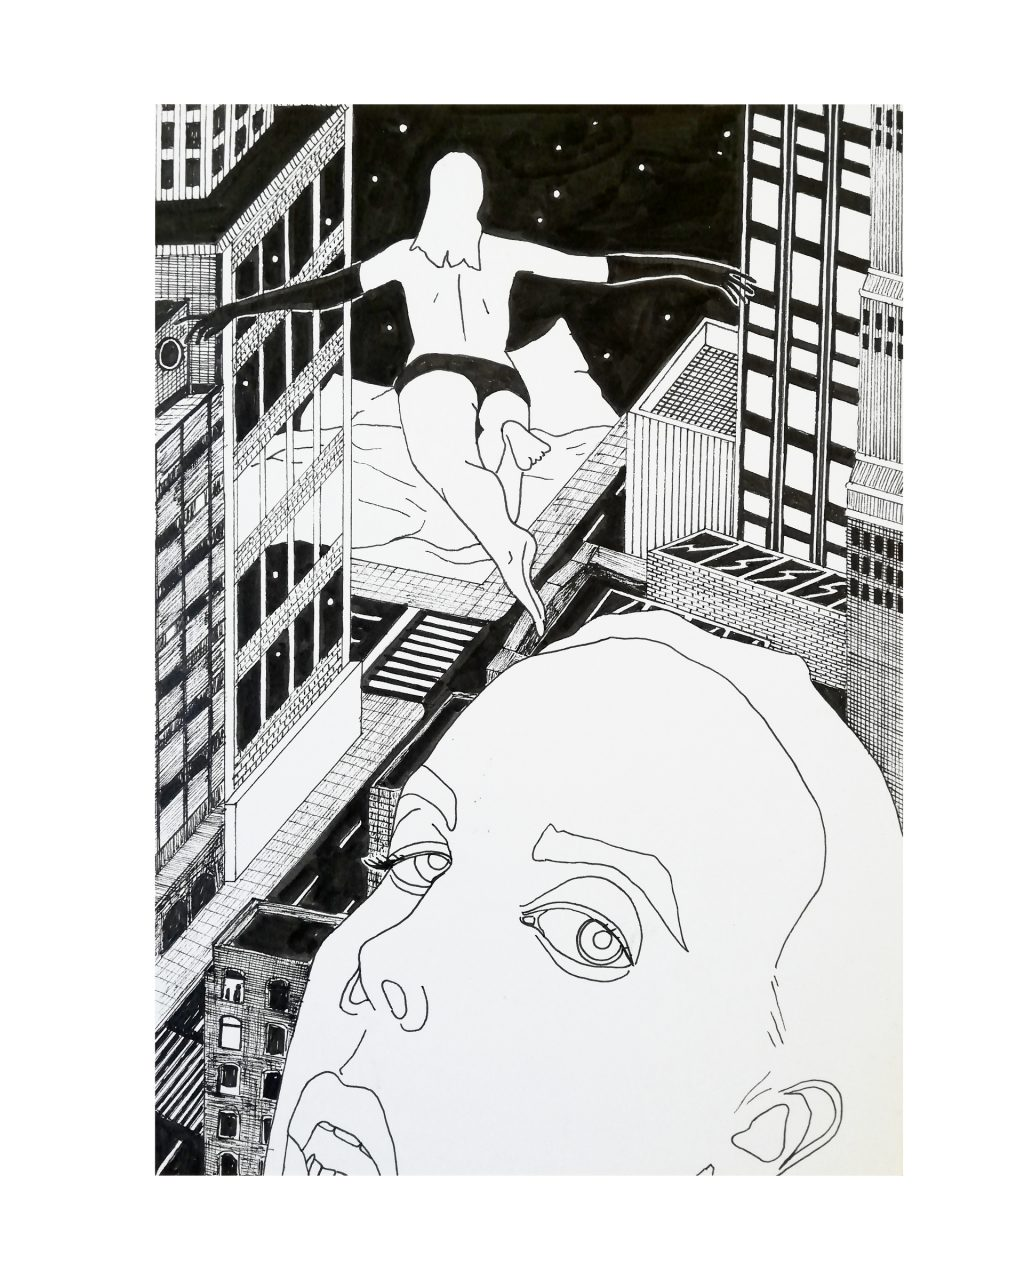 A SWEET, SANE LIFE, 17 x 25, fineliner on paper, 2020.